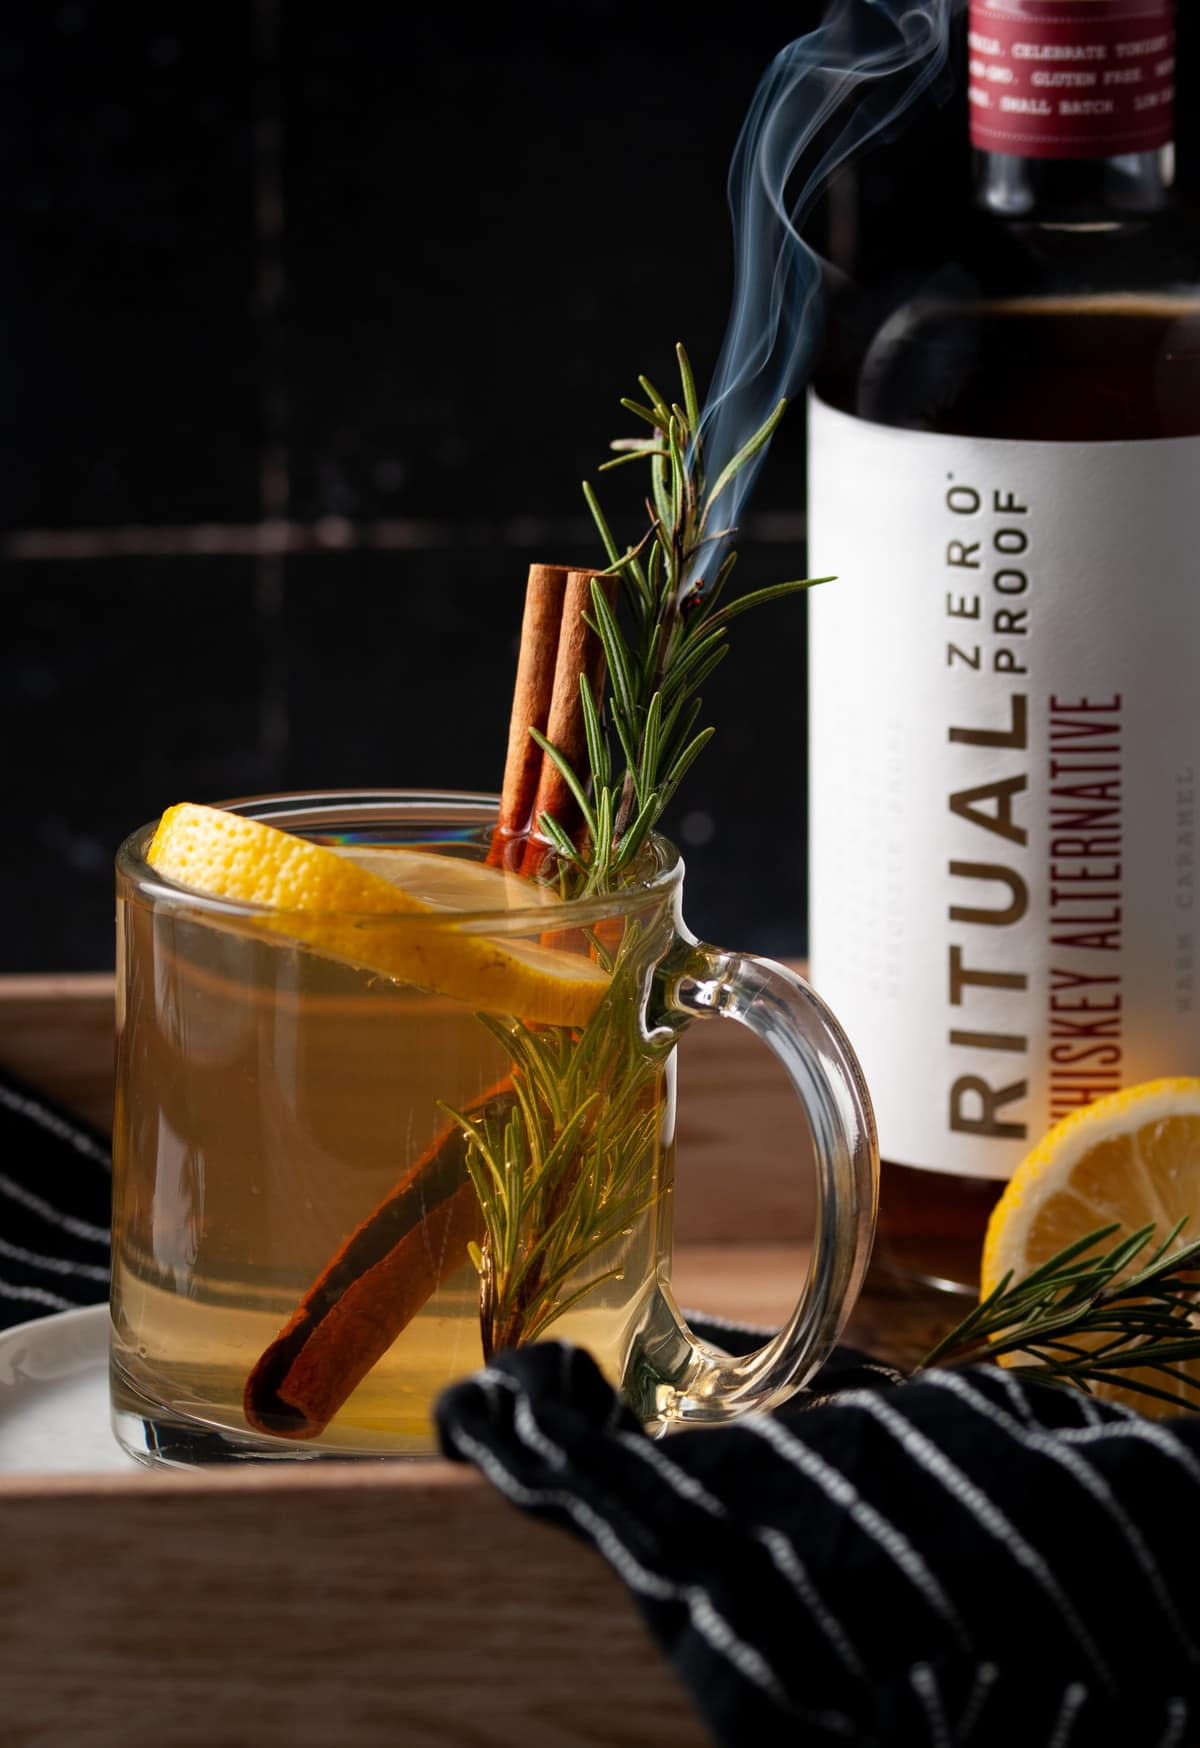 Non-Alcoholic Hot Toddy with Rosemary Garnish that is smoking